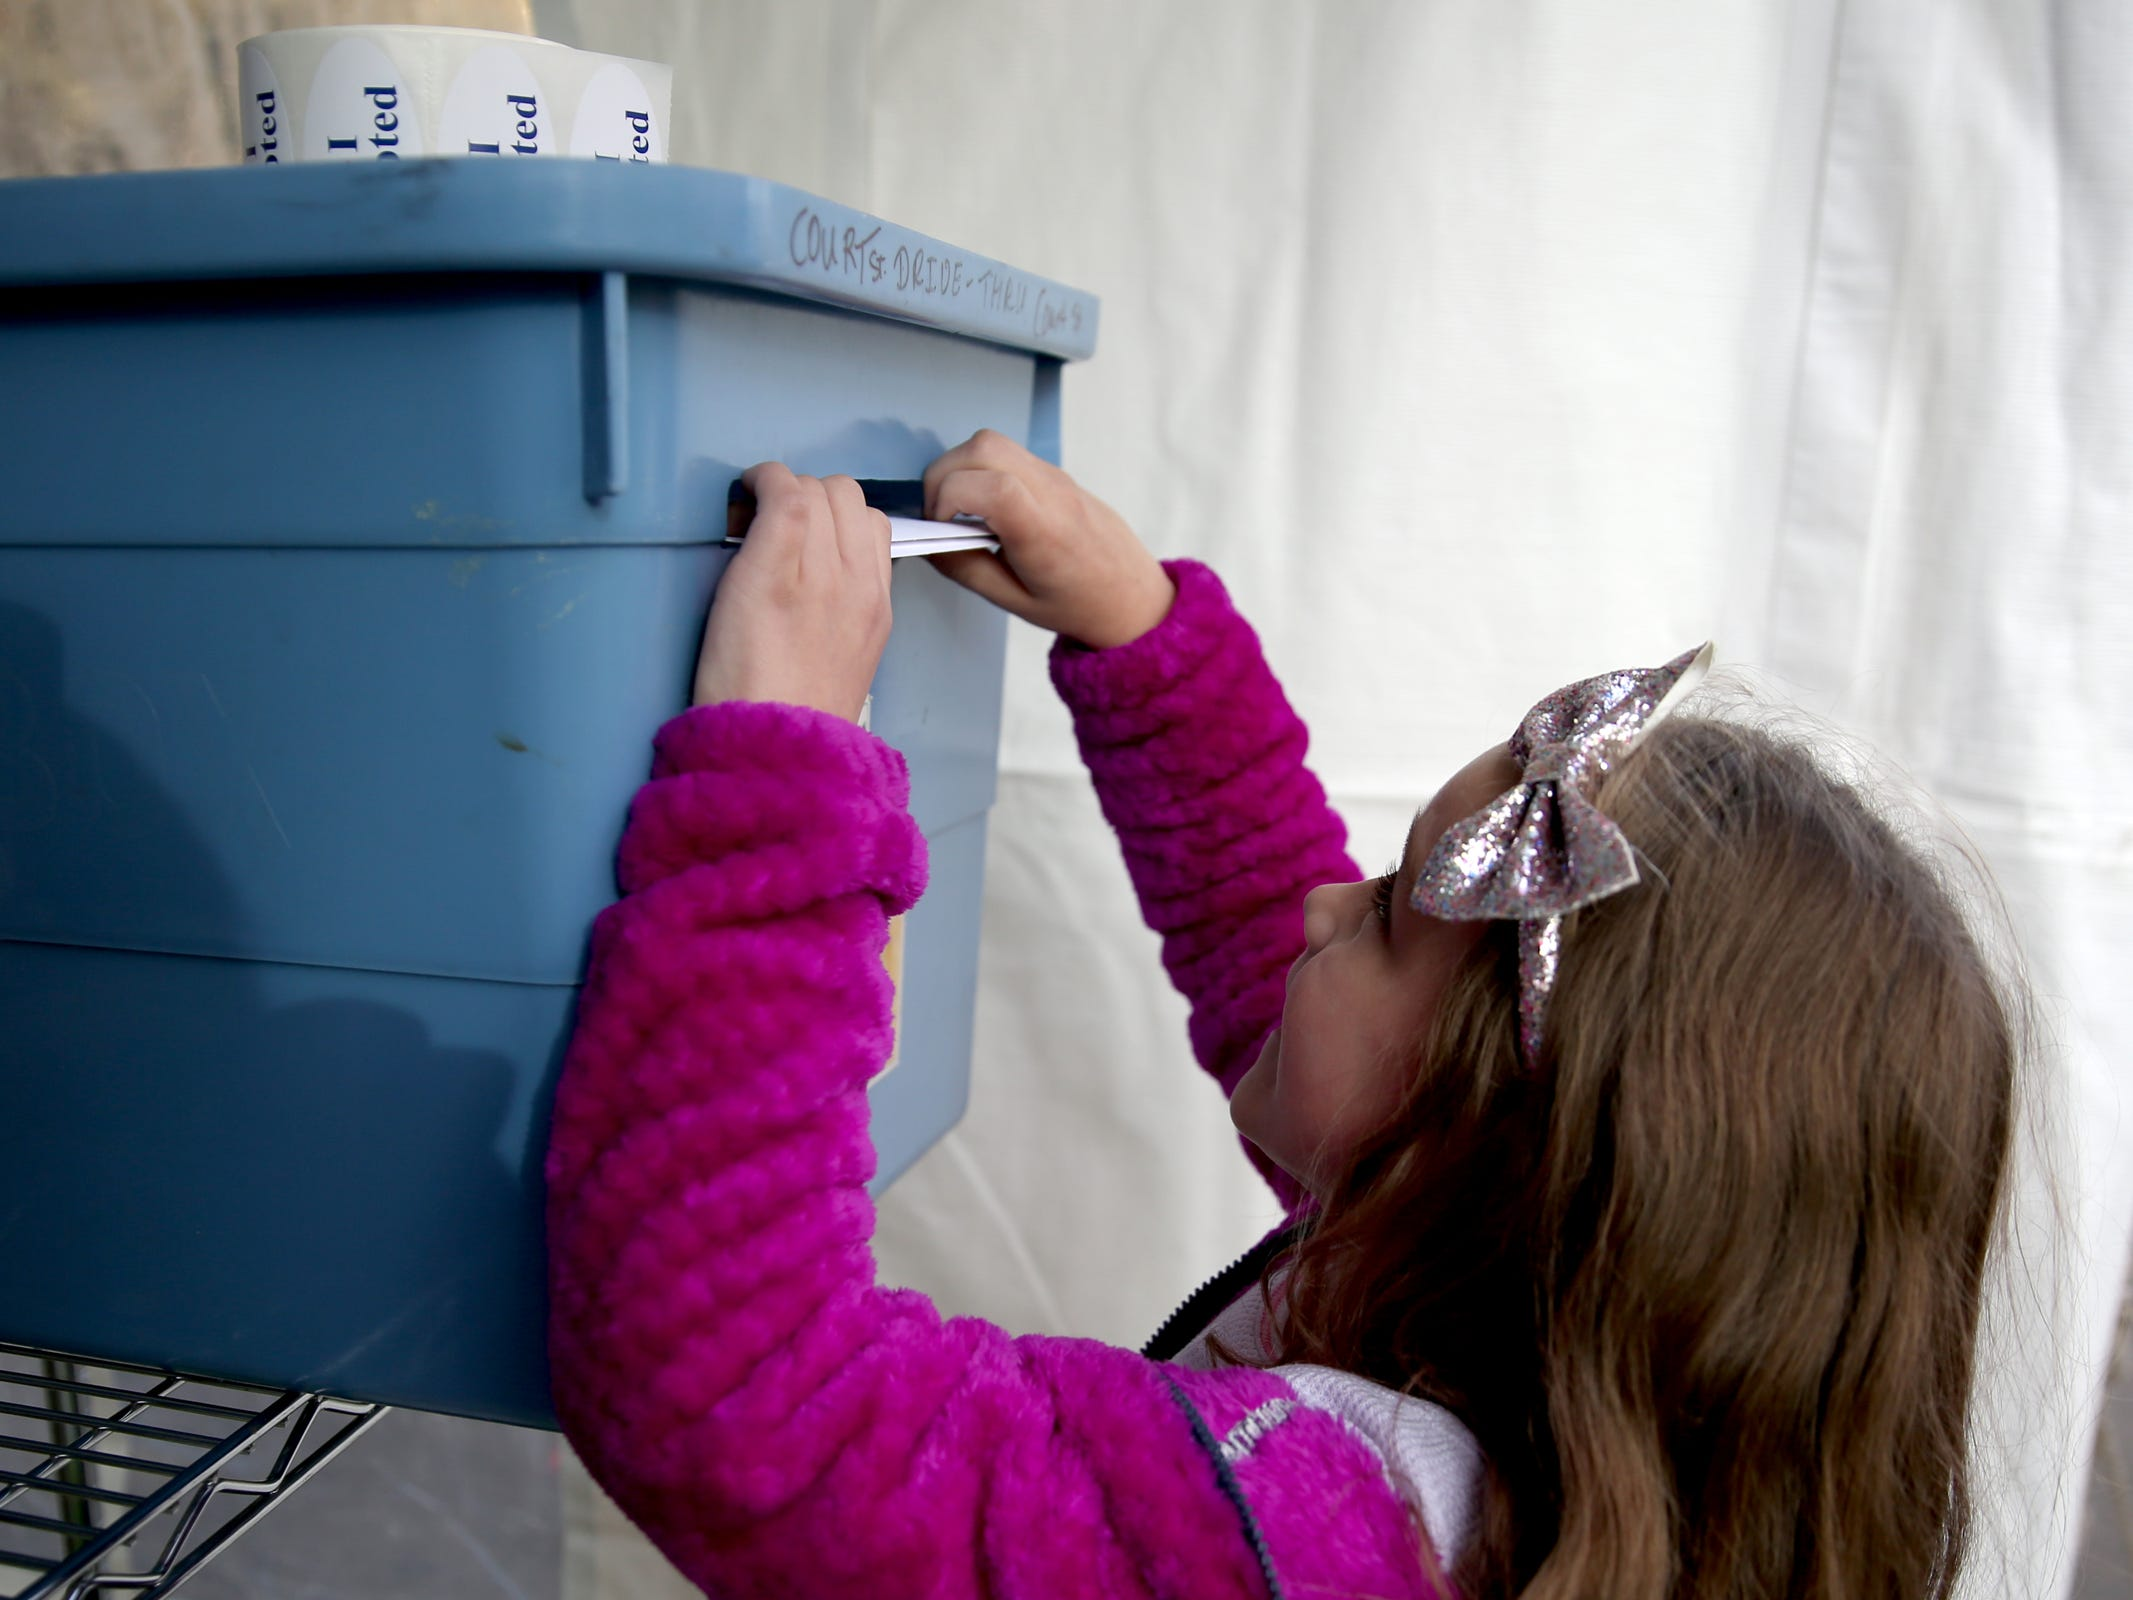 Addisun Rach, 7, of Salem, slips her dad's ballot inside a drop box at the drive-up drop box on Court St. NE in Salem on Election Day, Tuesday, Nov. 6, 2018.